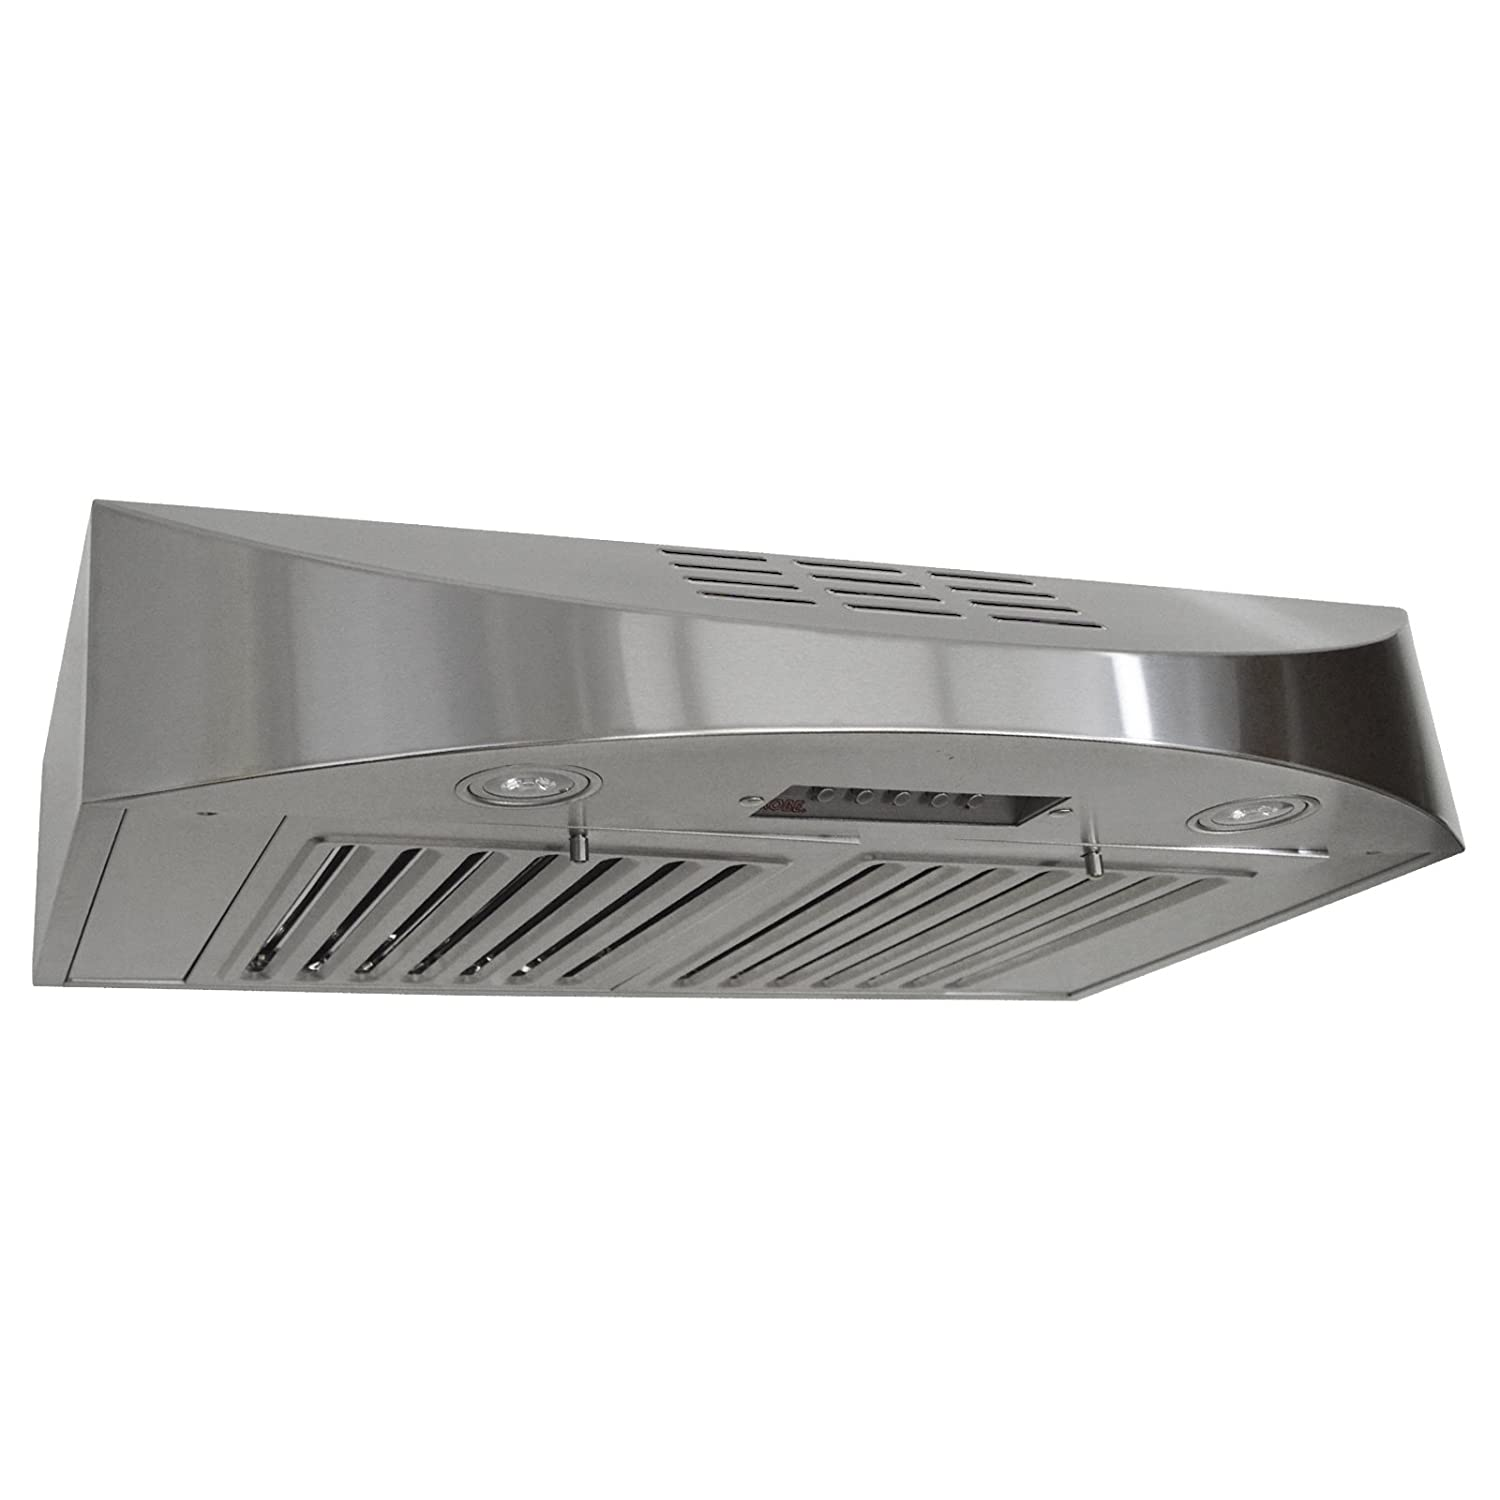 "KOBE Range Hoods CHX3830SQBD-3 Contemporary Brillia 30"" Under Cabinet Range Hood, 3-Speed, 400 CFM, LED Lights, Baffle Filters, Recirculating, Stainless Steel"